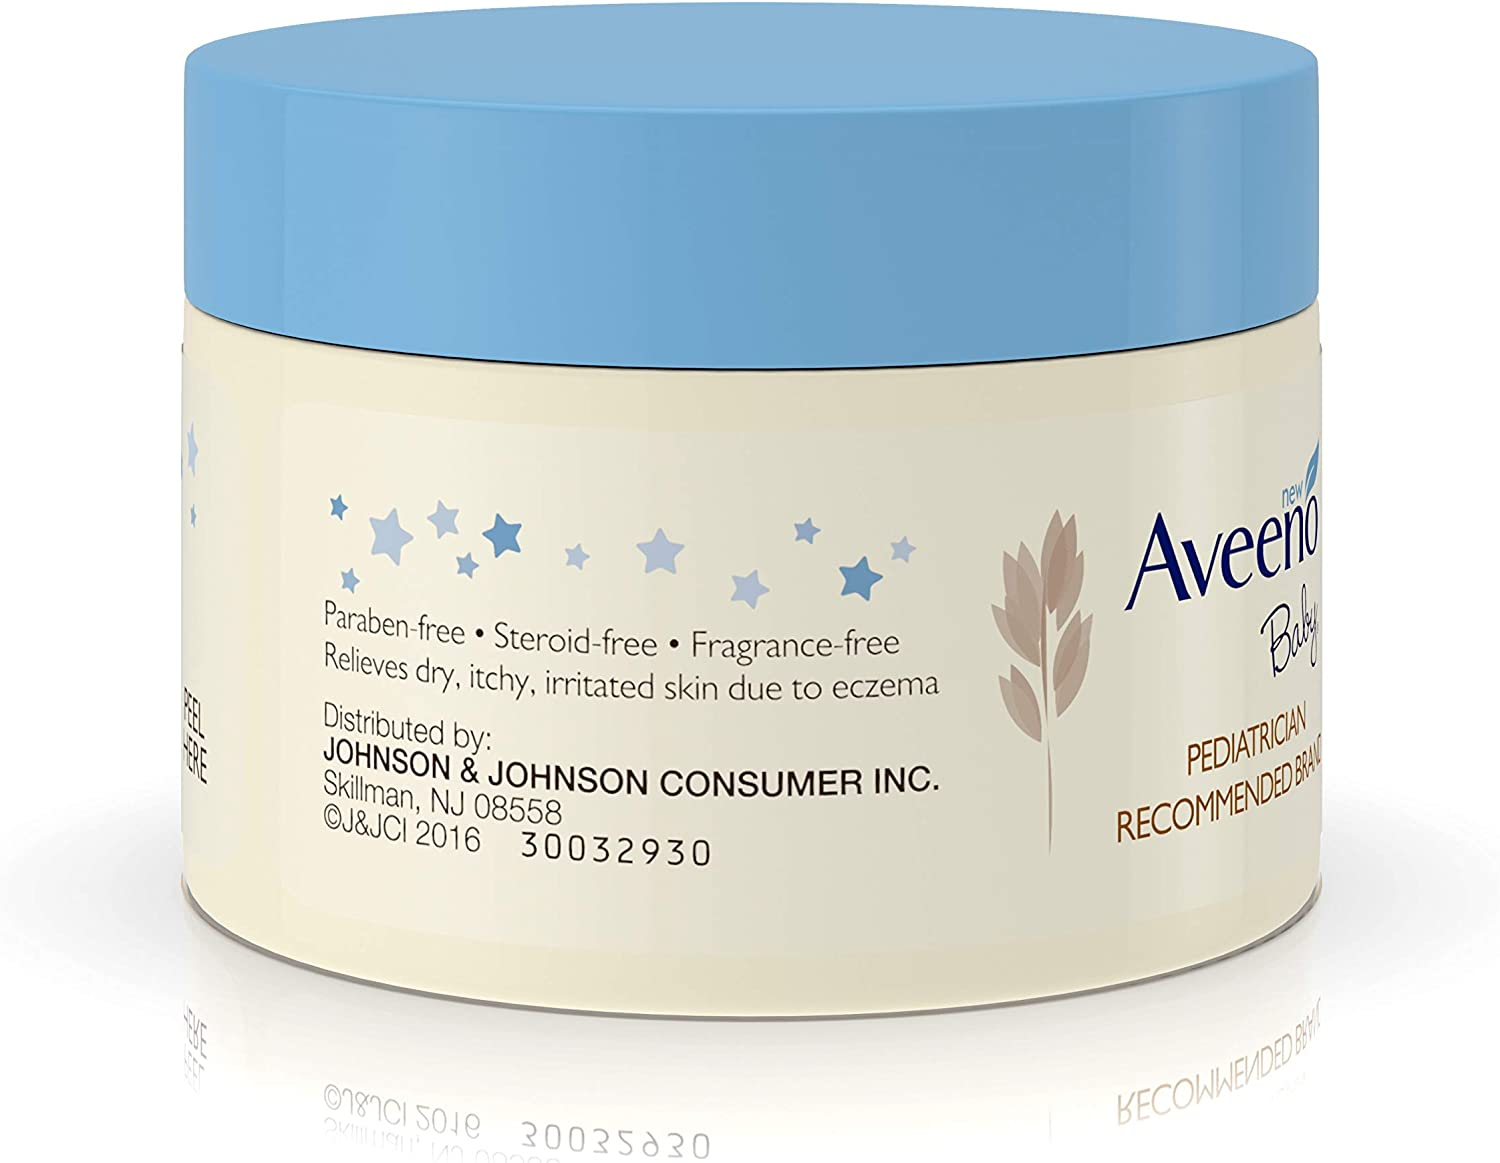 Aveeno Baby Eczema Therapy Nighttime Balm with Natural Colloidal Oatmeal for Eczema Relief, 1 oz: Health & Personal Care